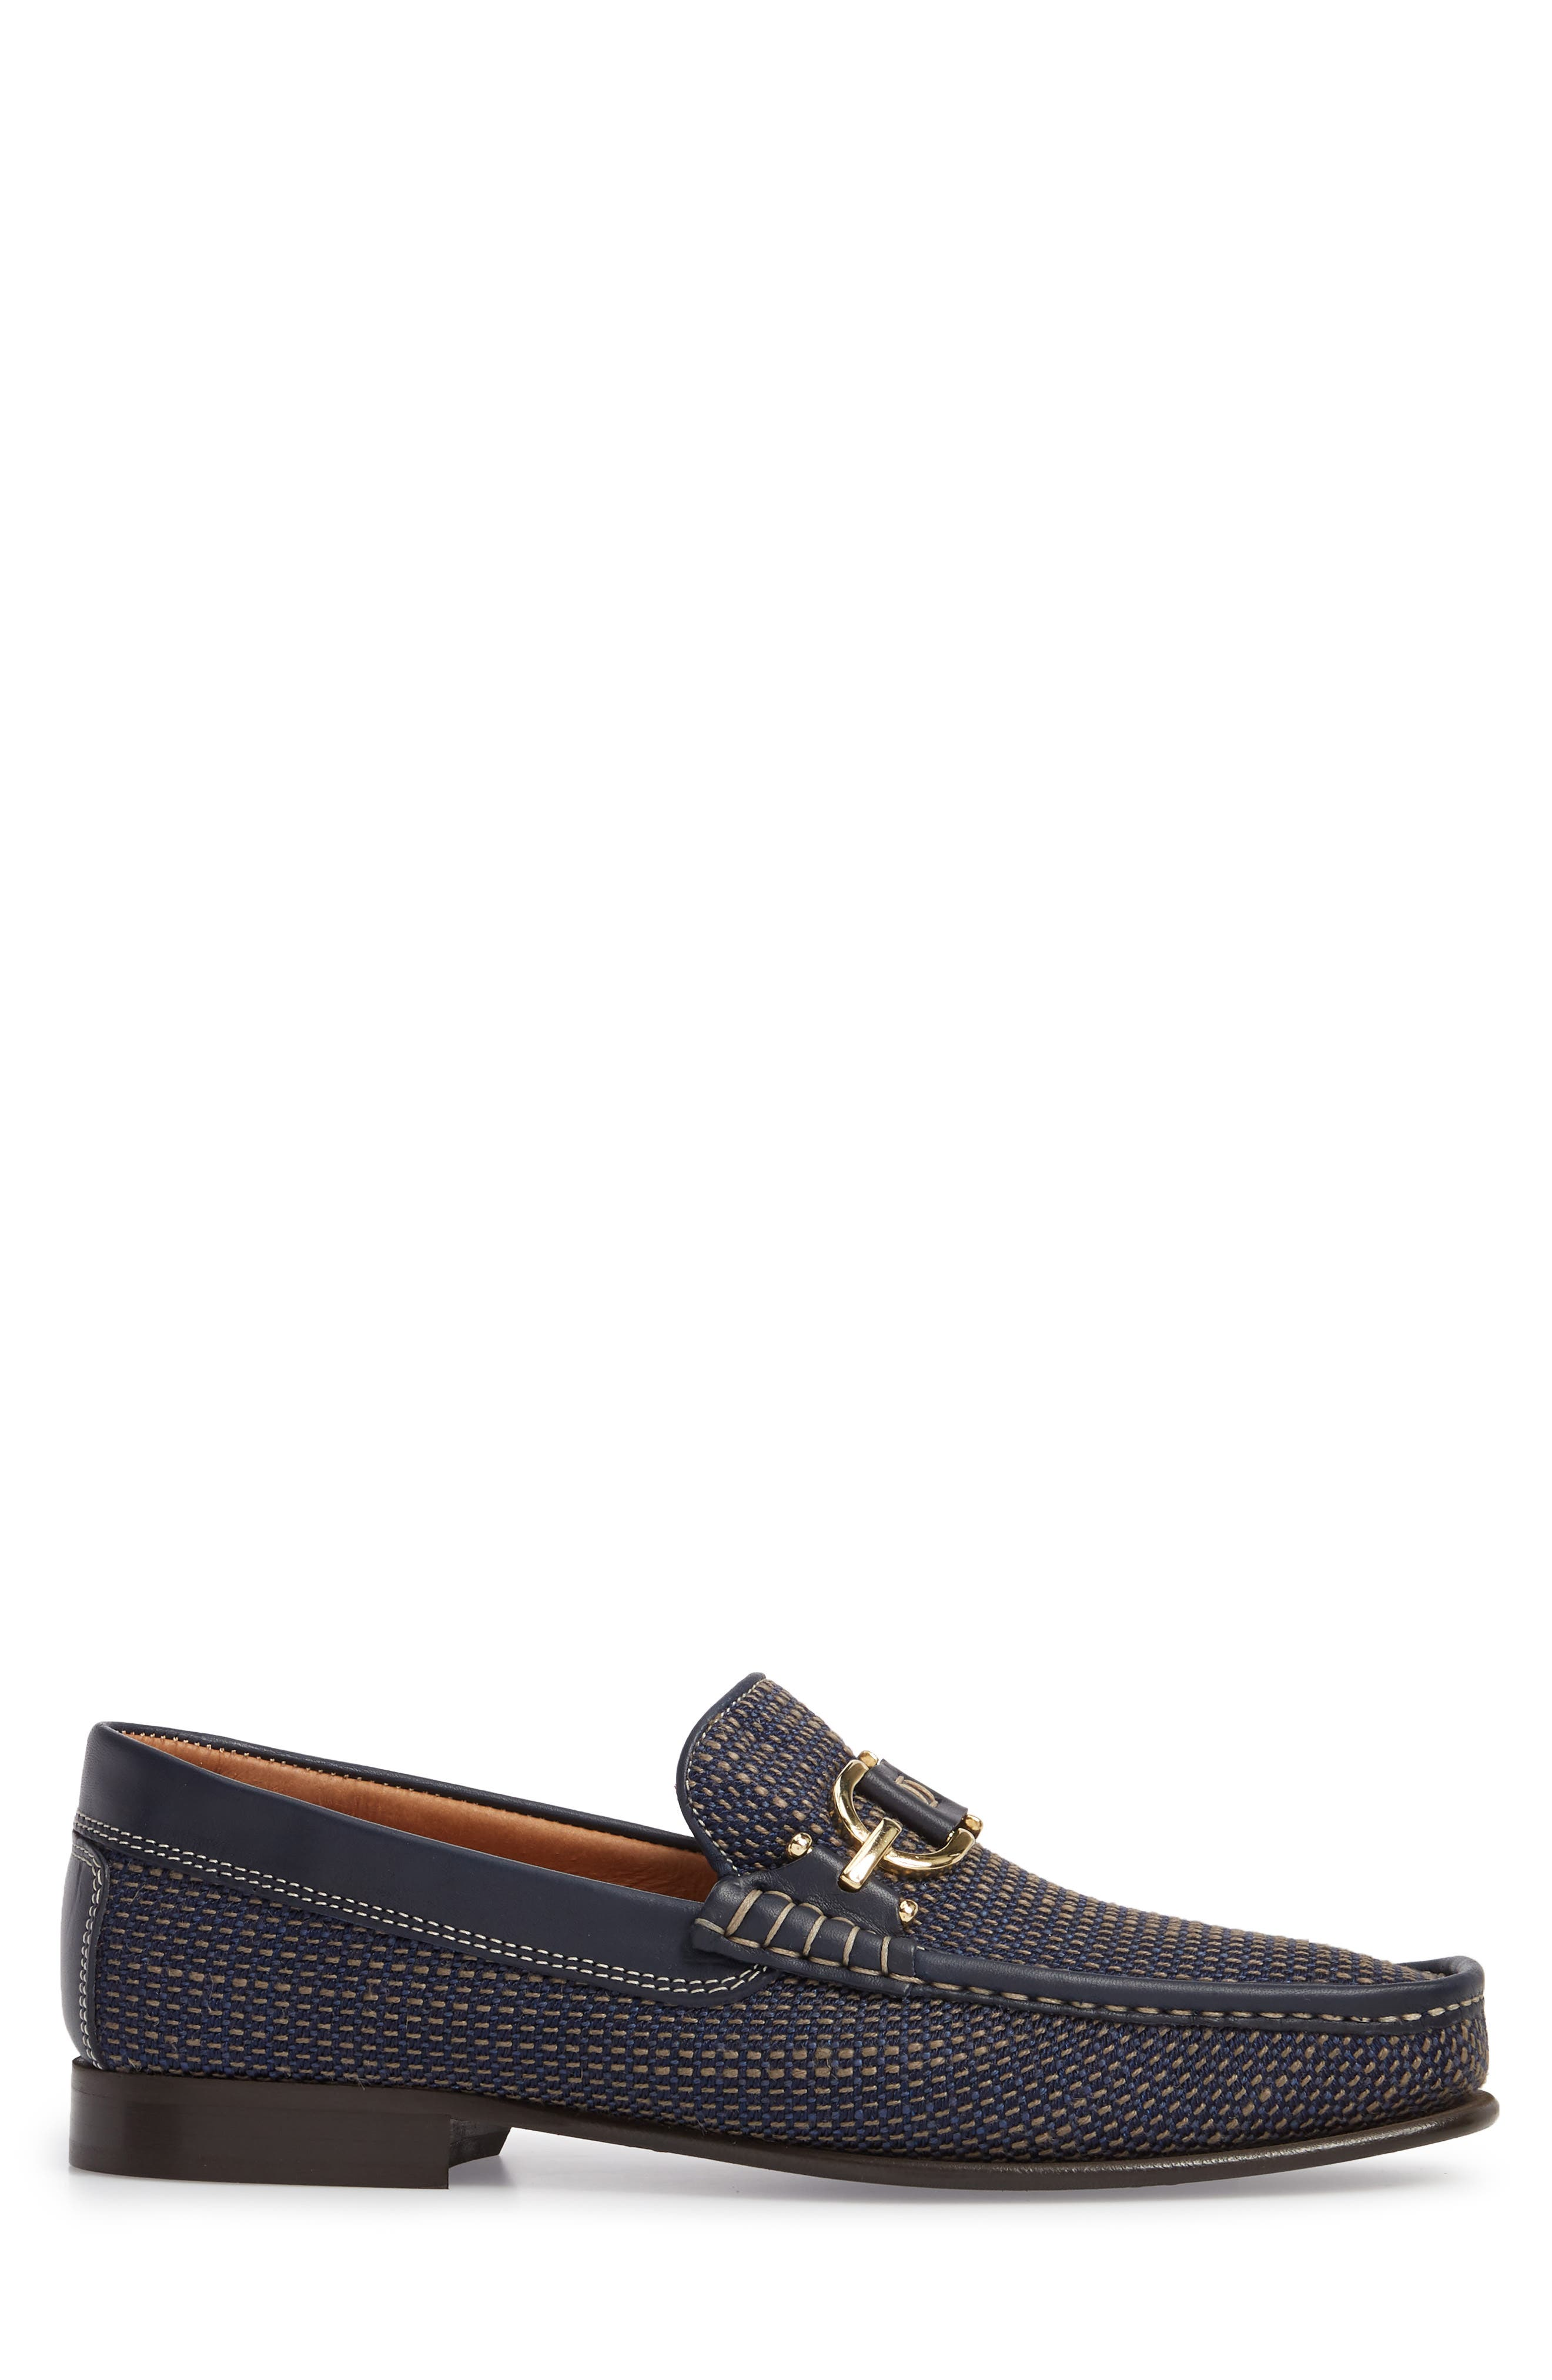 Dacio Woven Bit Loafer,                             Alternate thumbnail 3, color,                             Navy Leather